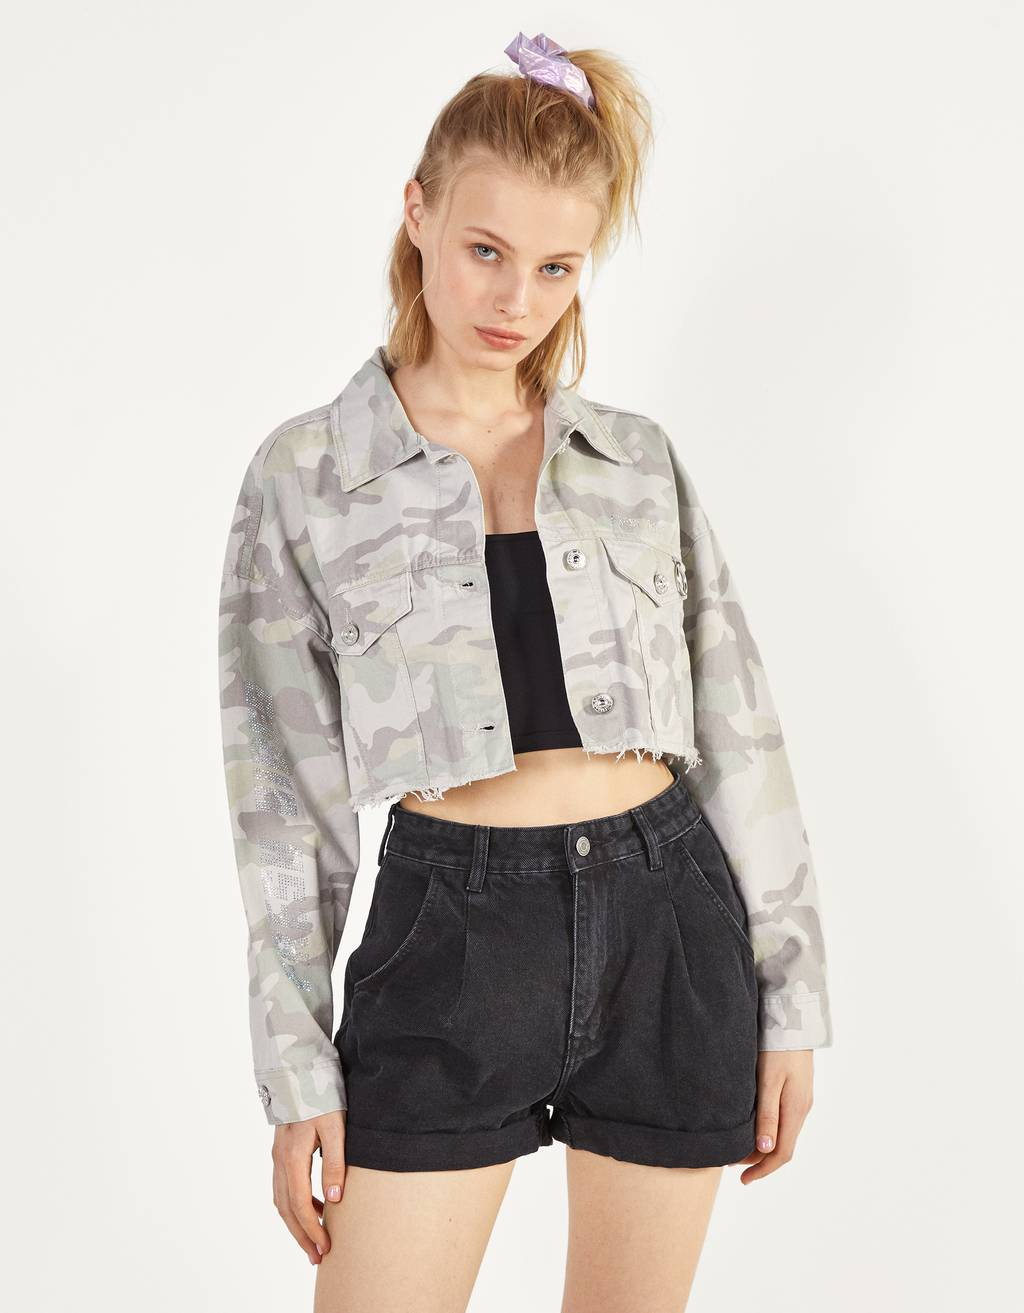 Cropped jacket with shiny details